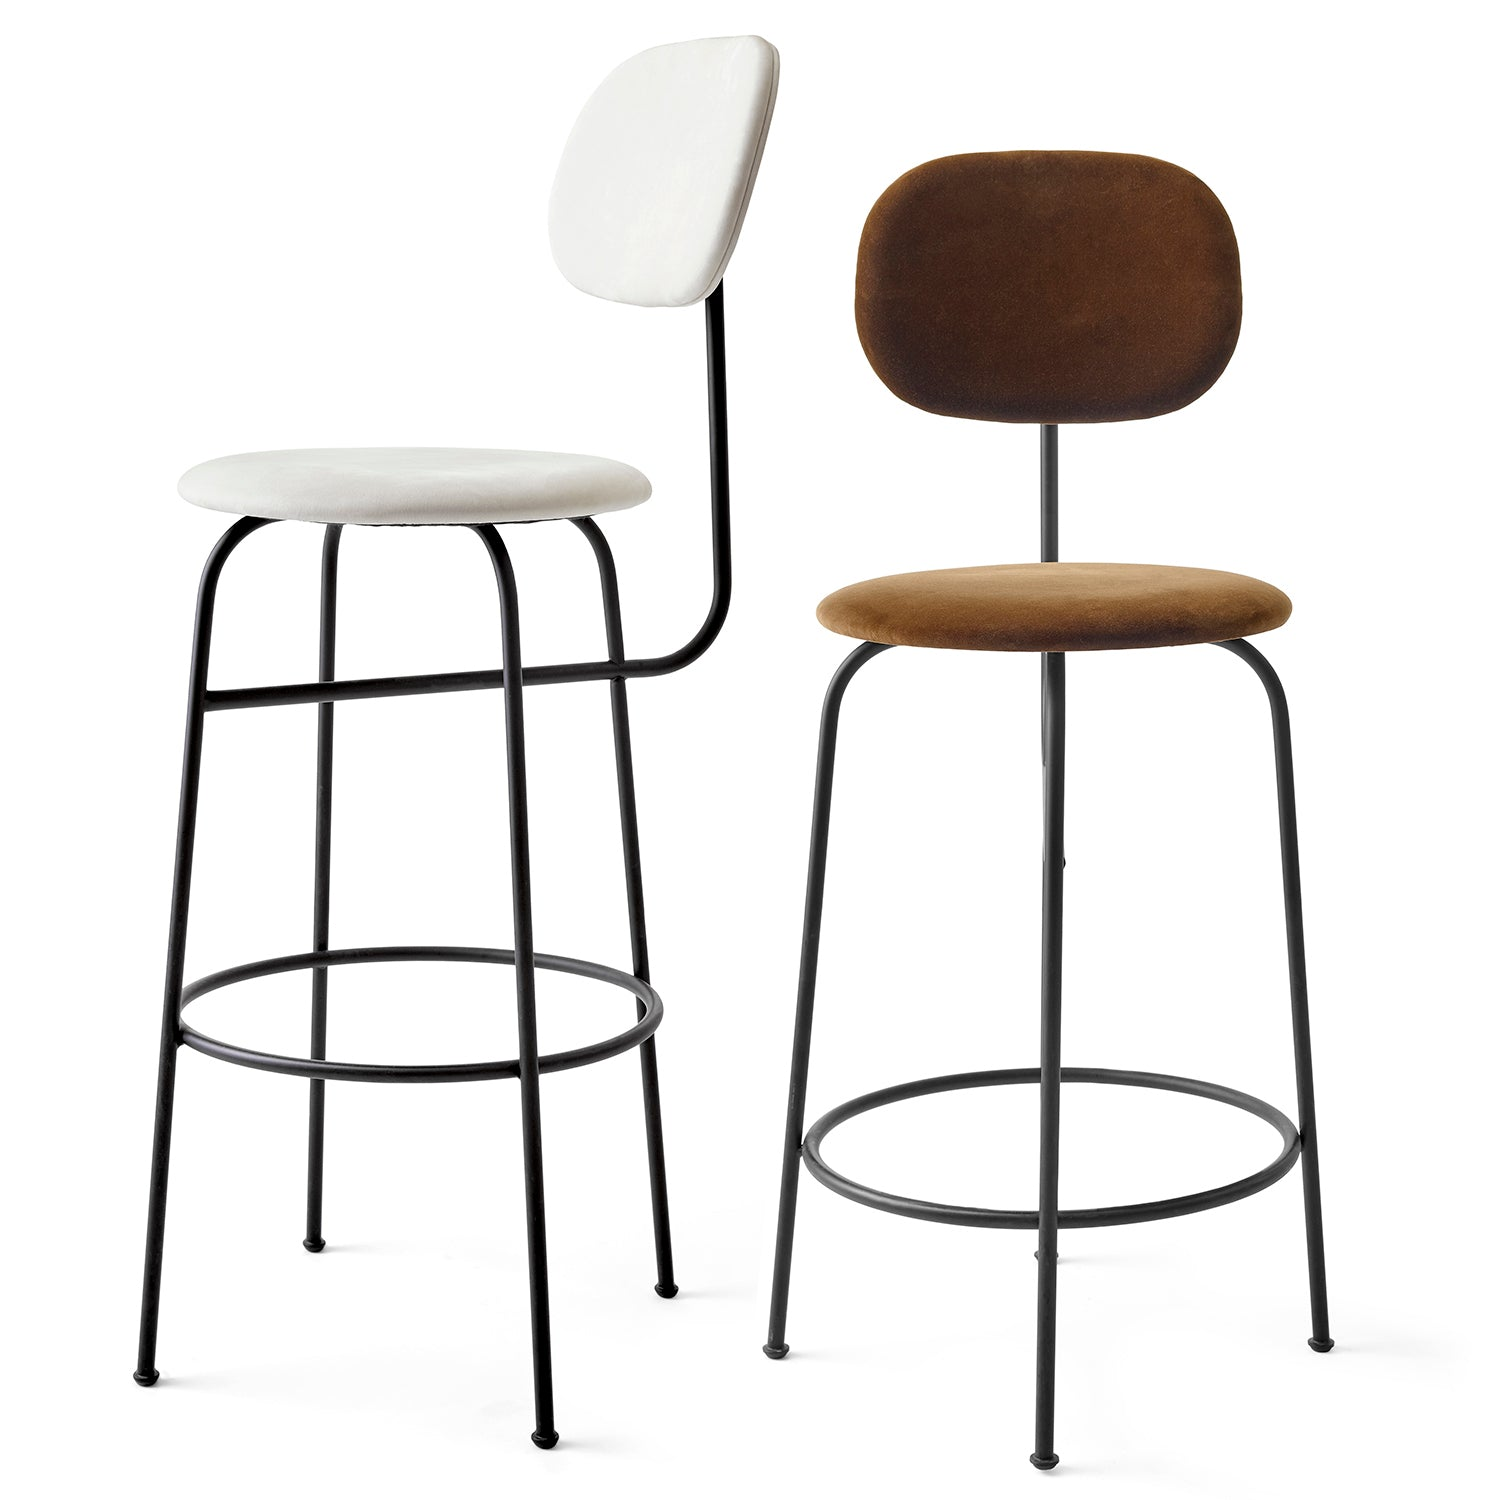 Afteroom Bar + Counter Chair Plus: Upholstered